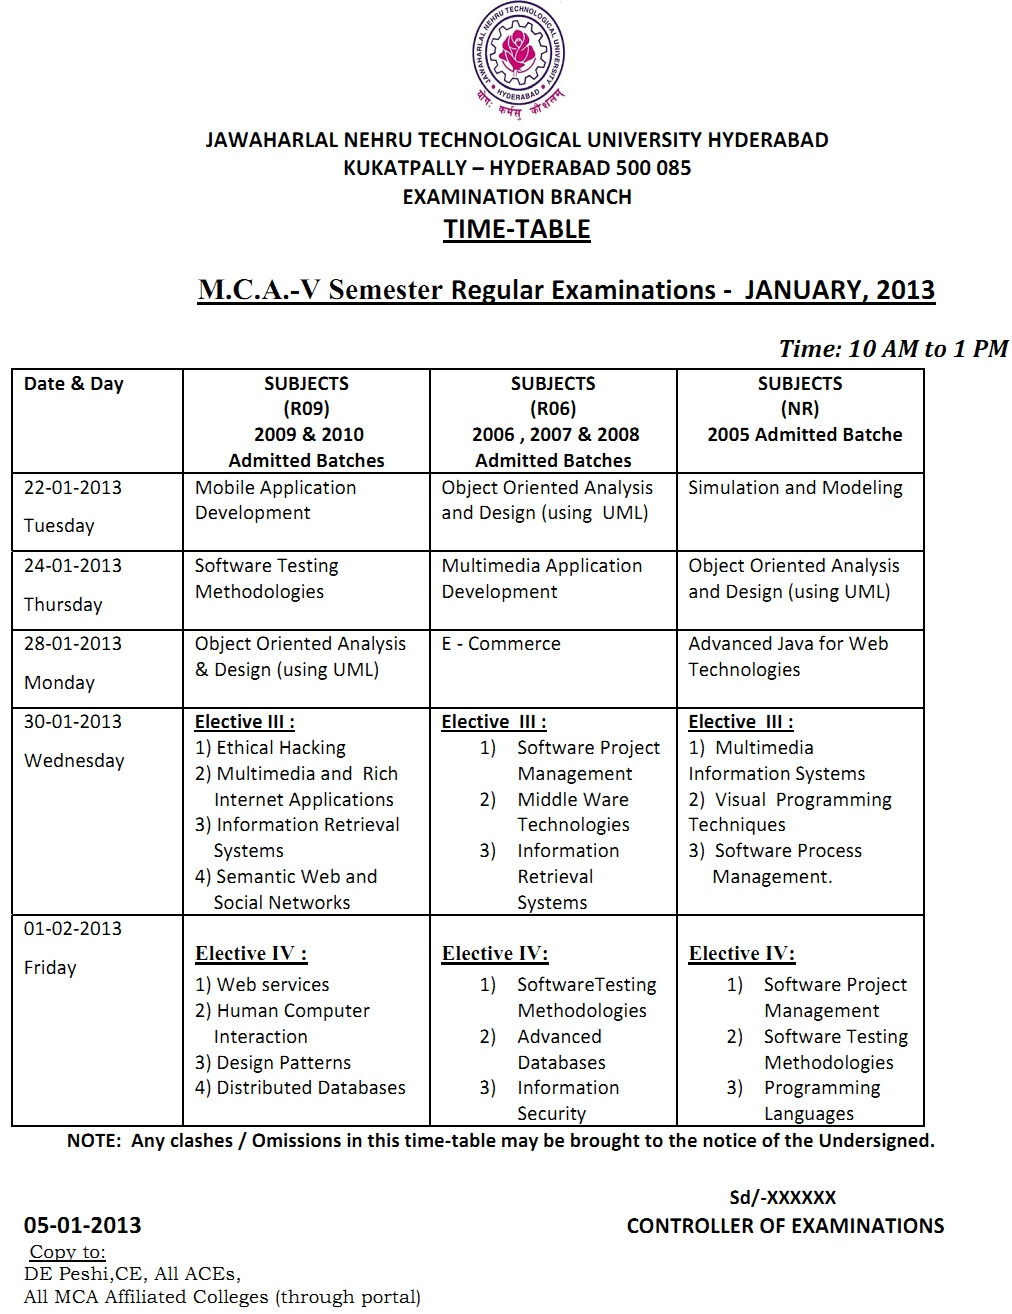 Jnvu exam time table 2013 b.com 2nd year of marriage